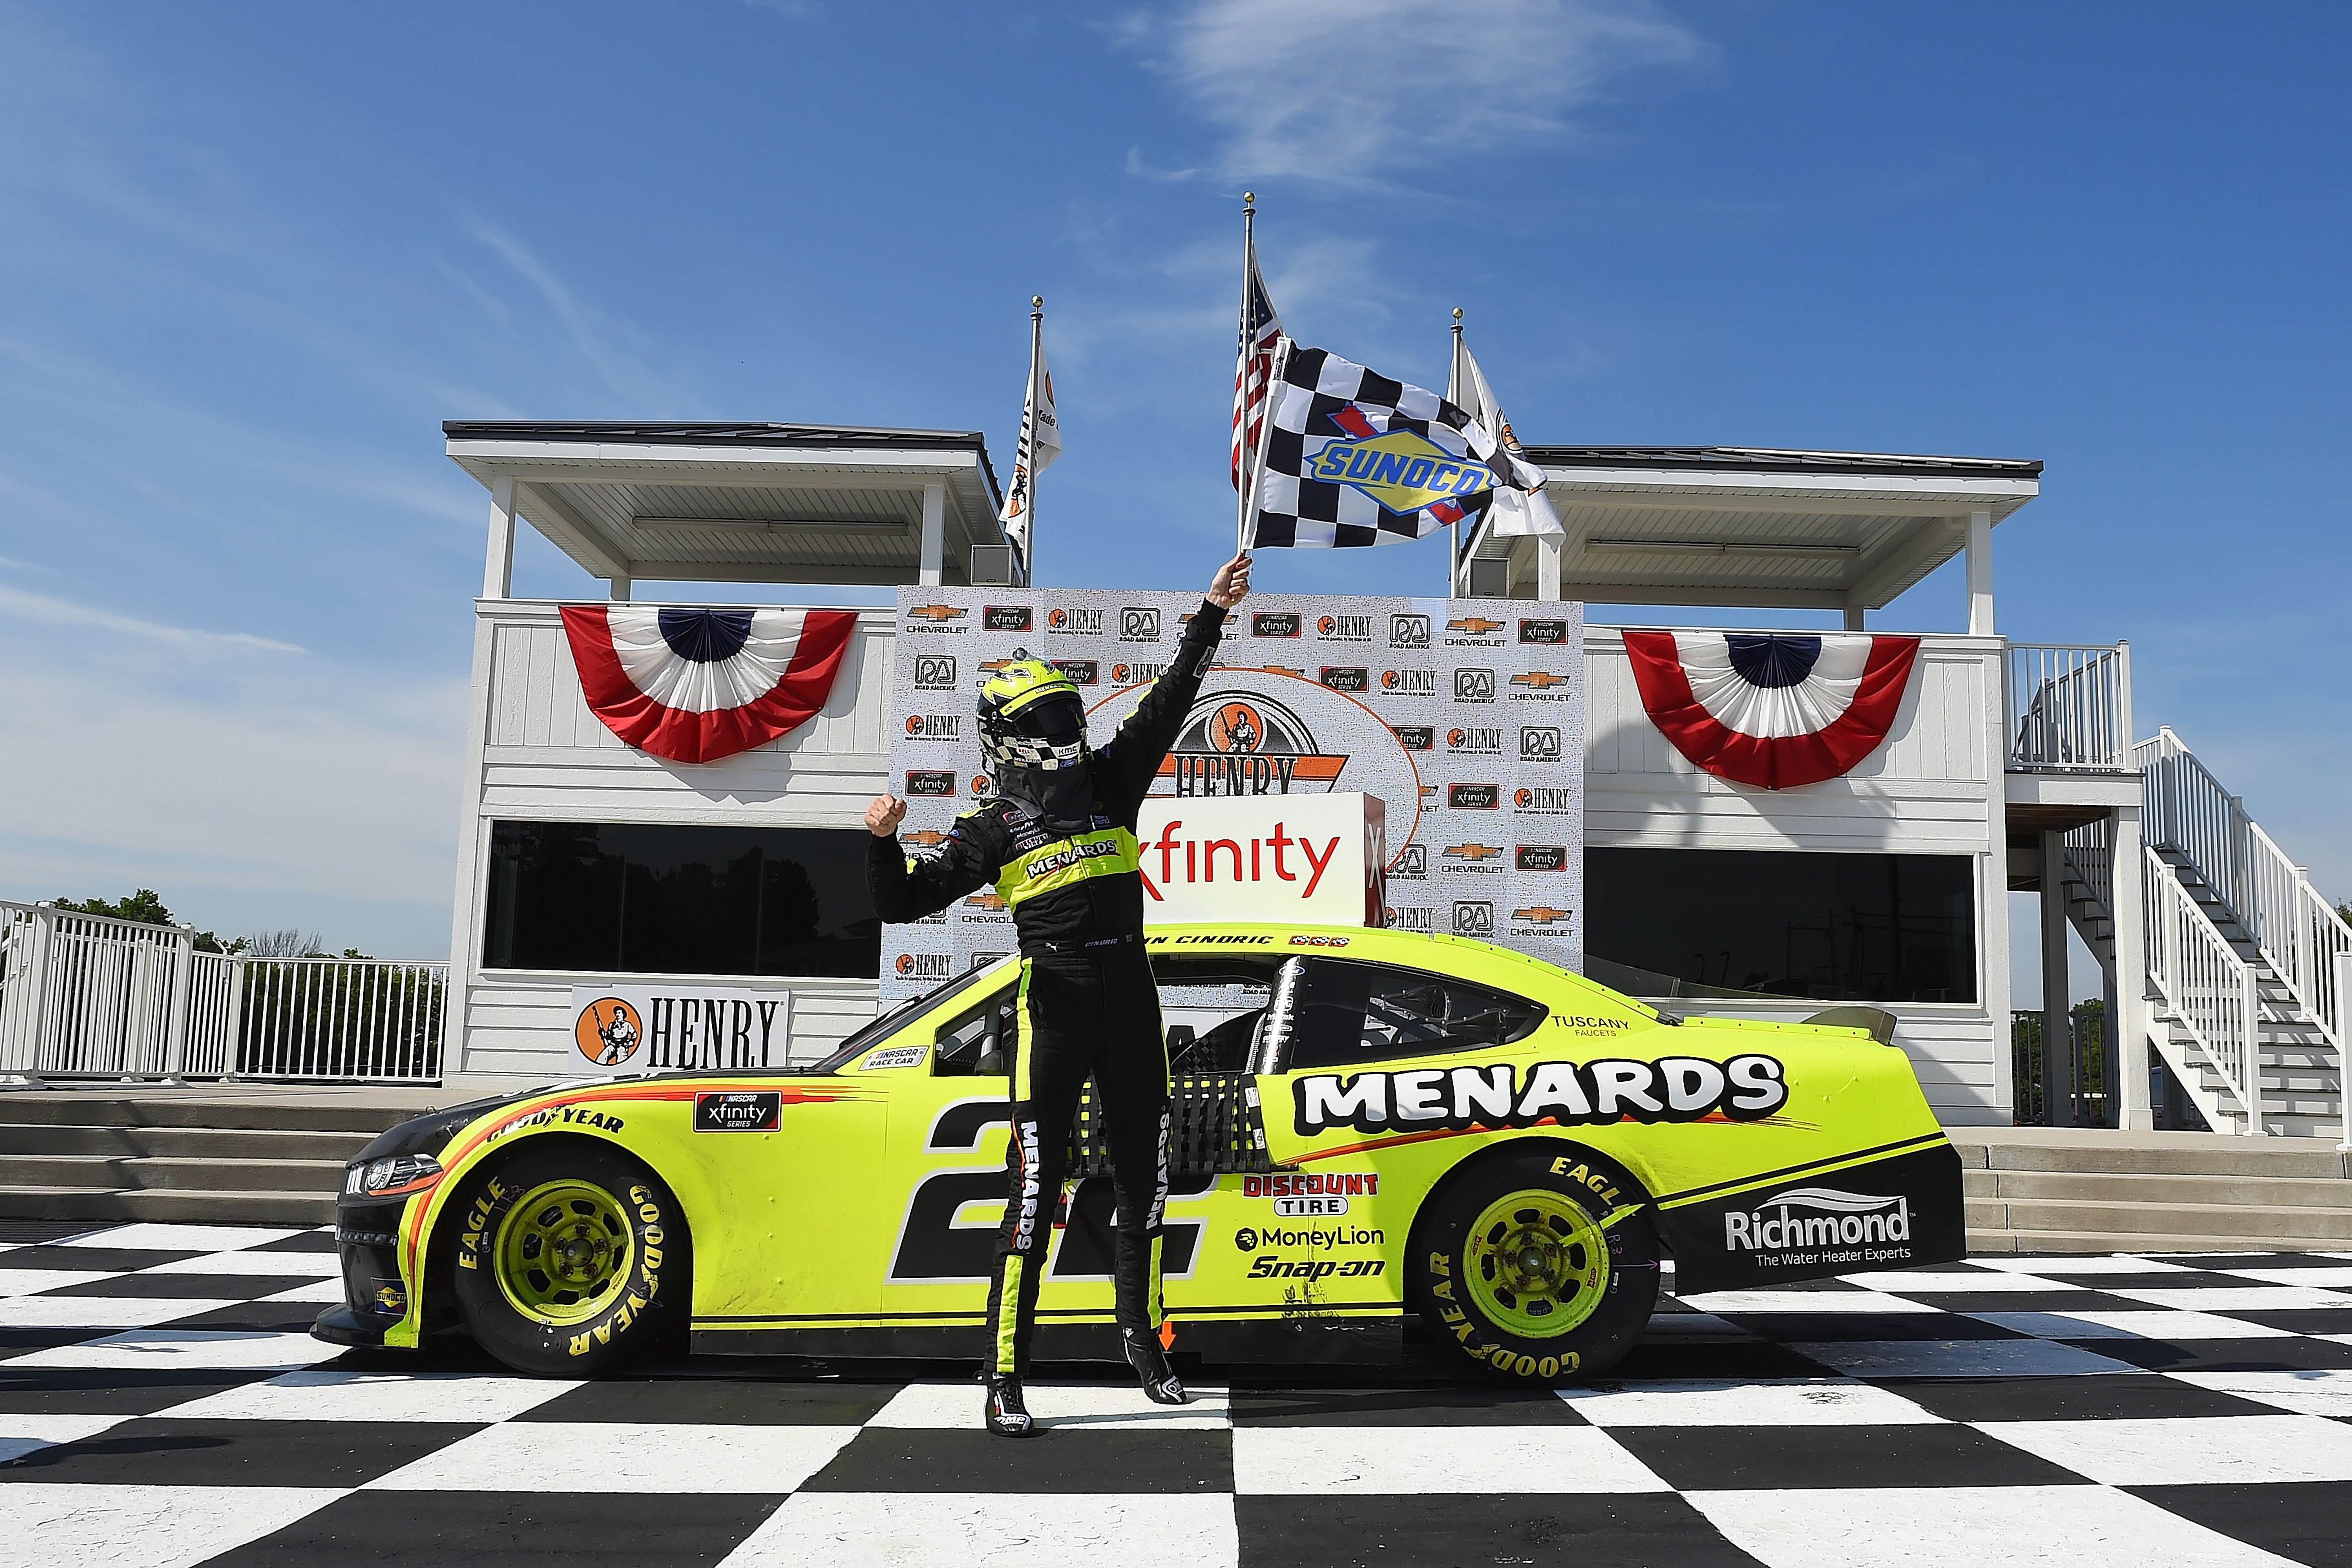 Menards/Richmond Ford driver Austin Cindric celebrates in Victory Lane after winning the NASCAR Xfinity Series Henry 180